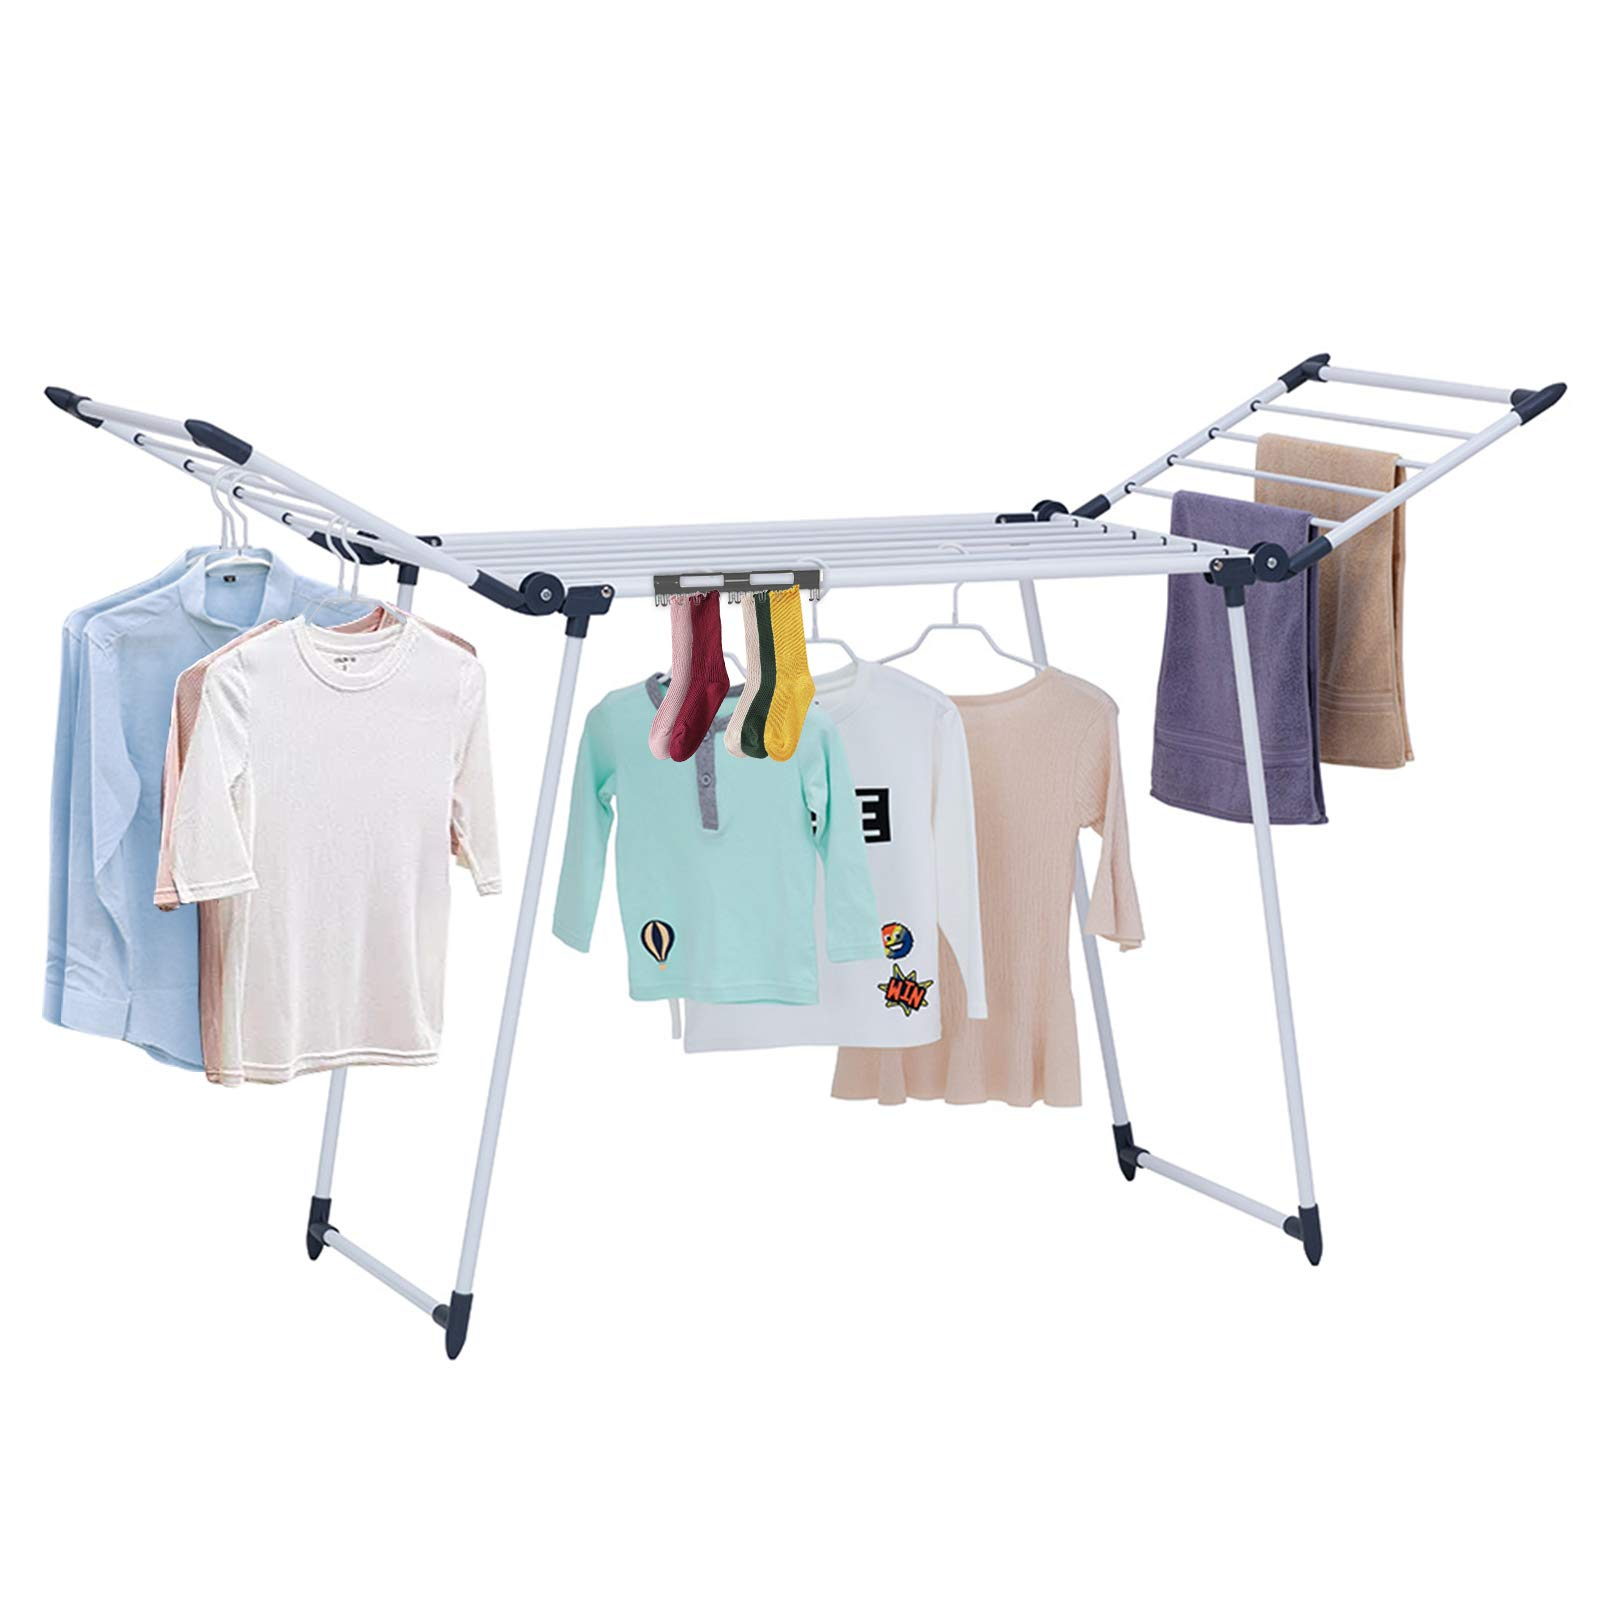 YUBELLES Gullwing Drying Rack Foldable Laundry Rack for Indoor and Outdoor Use for Bed Linen Socks Grey Clothes Drying Rack Scarves